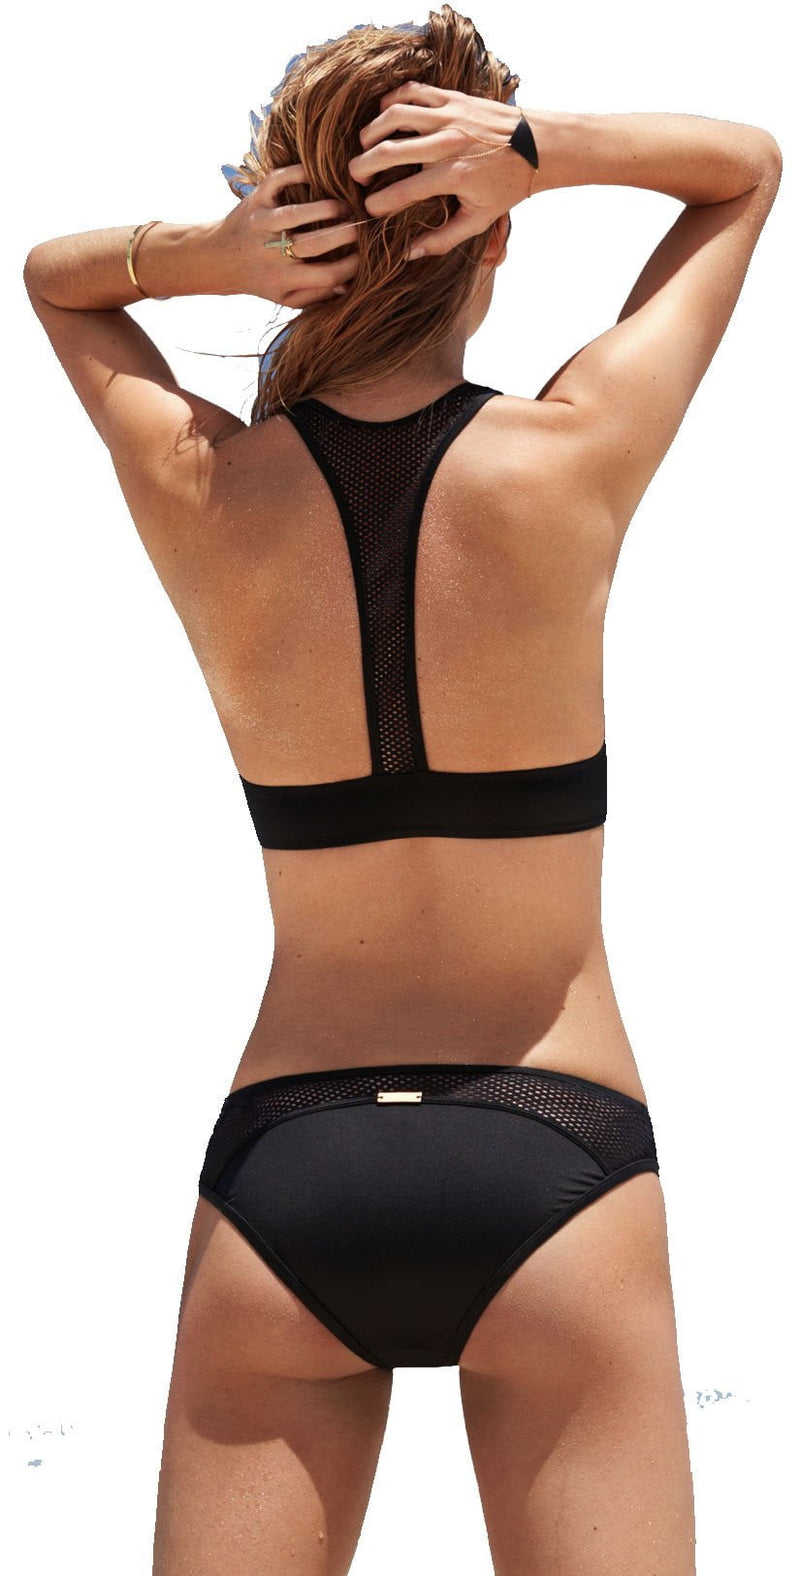 Watercult Active Mesh Bottom in Black 234-113-006: